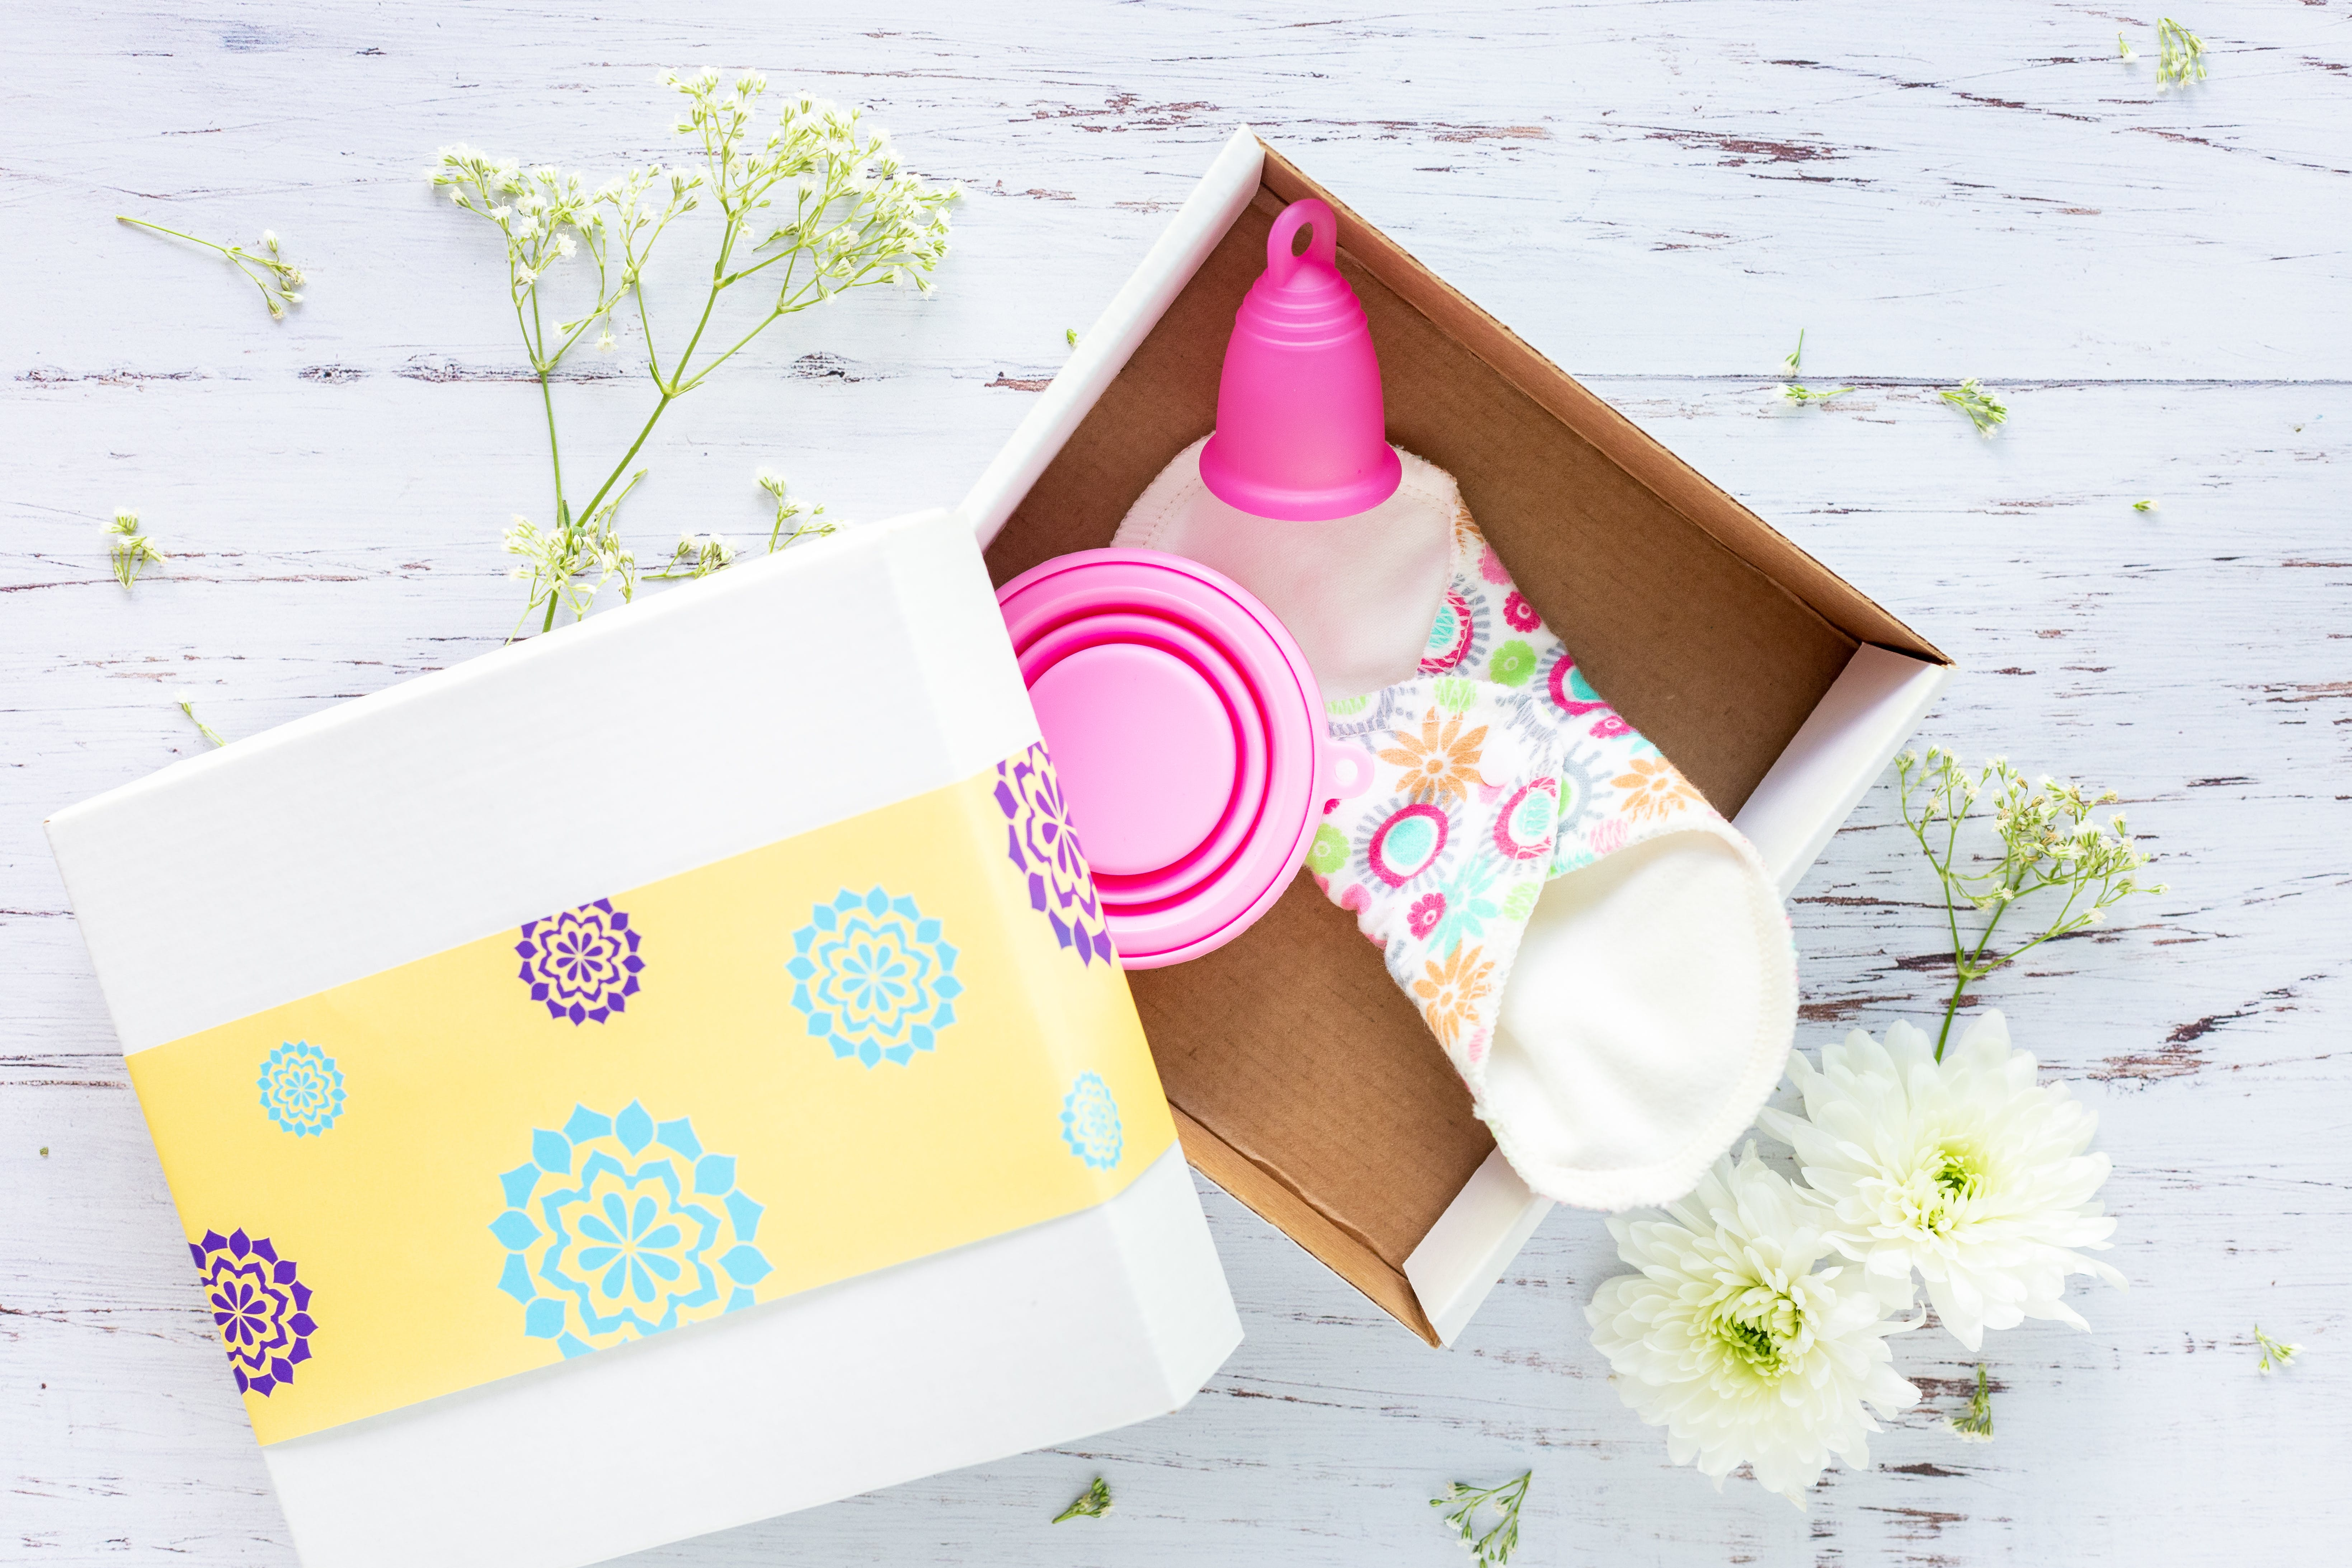 Pink Menstrual Cup in Box